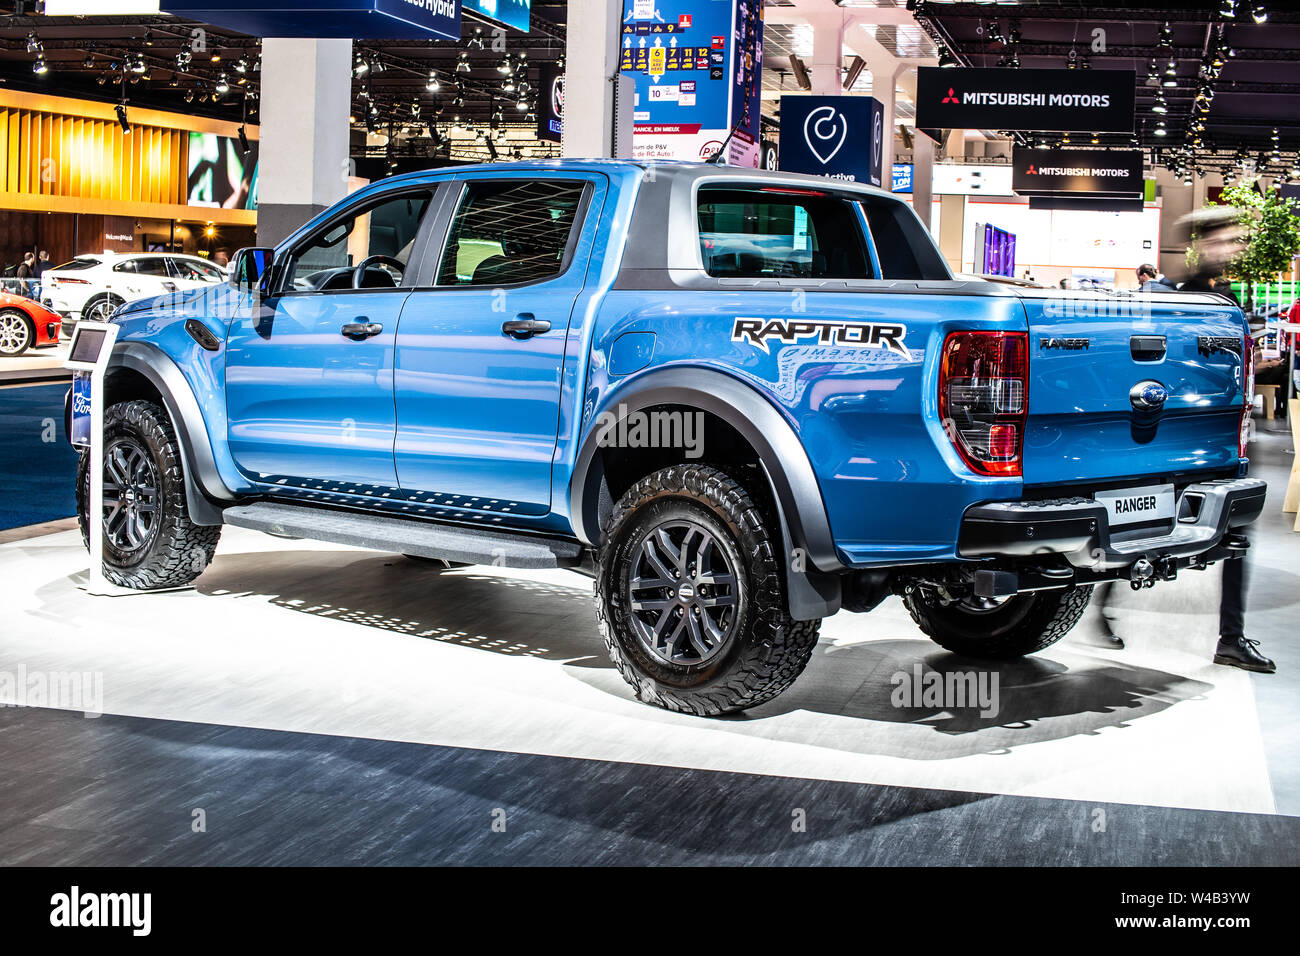 Ford Ranger Pickup Truck Stock Photos & Ford Ranger Pickup Truck